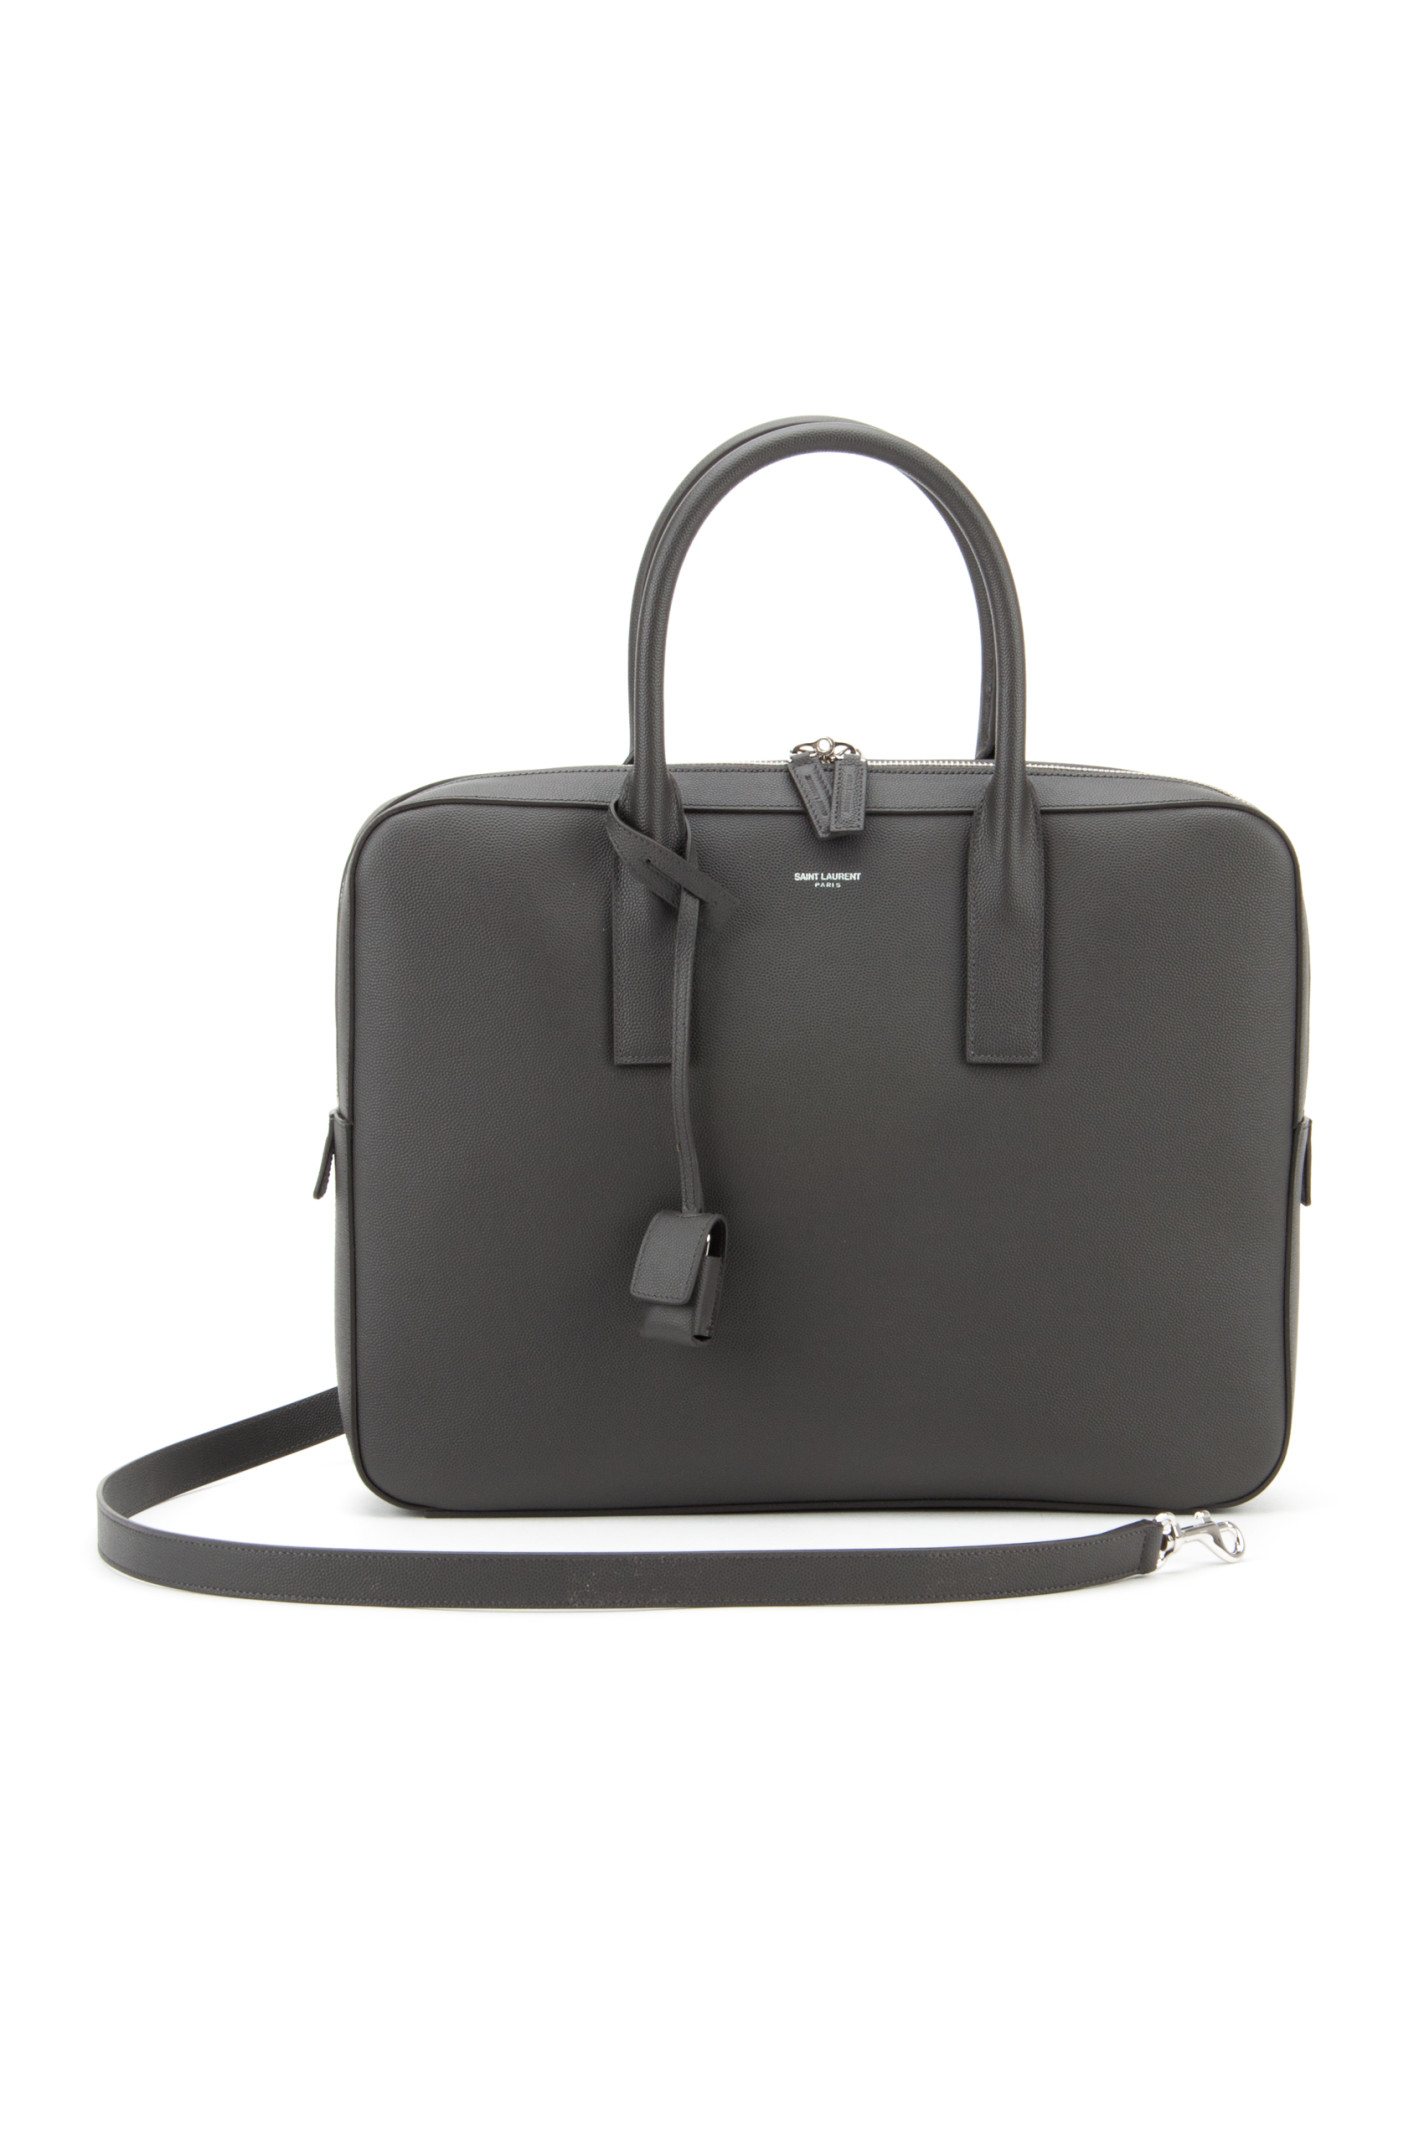 Saint laurent Ysl Museum Hunting Line Briefcase in Gold (COAL) | Lyst